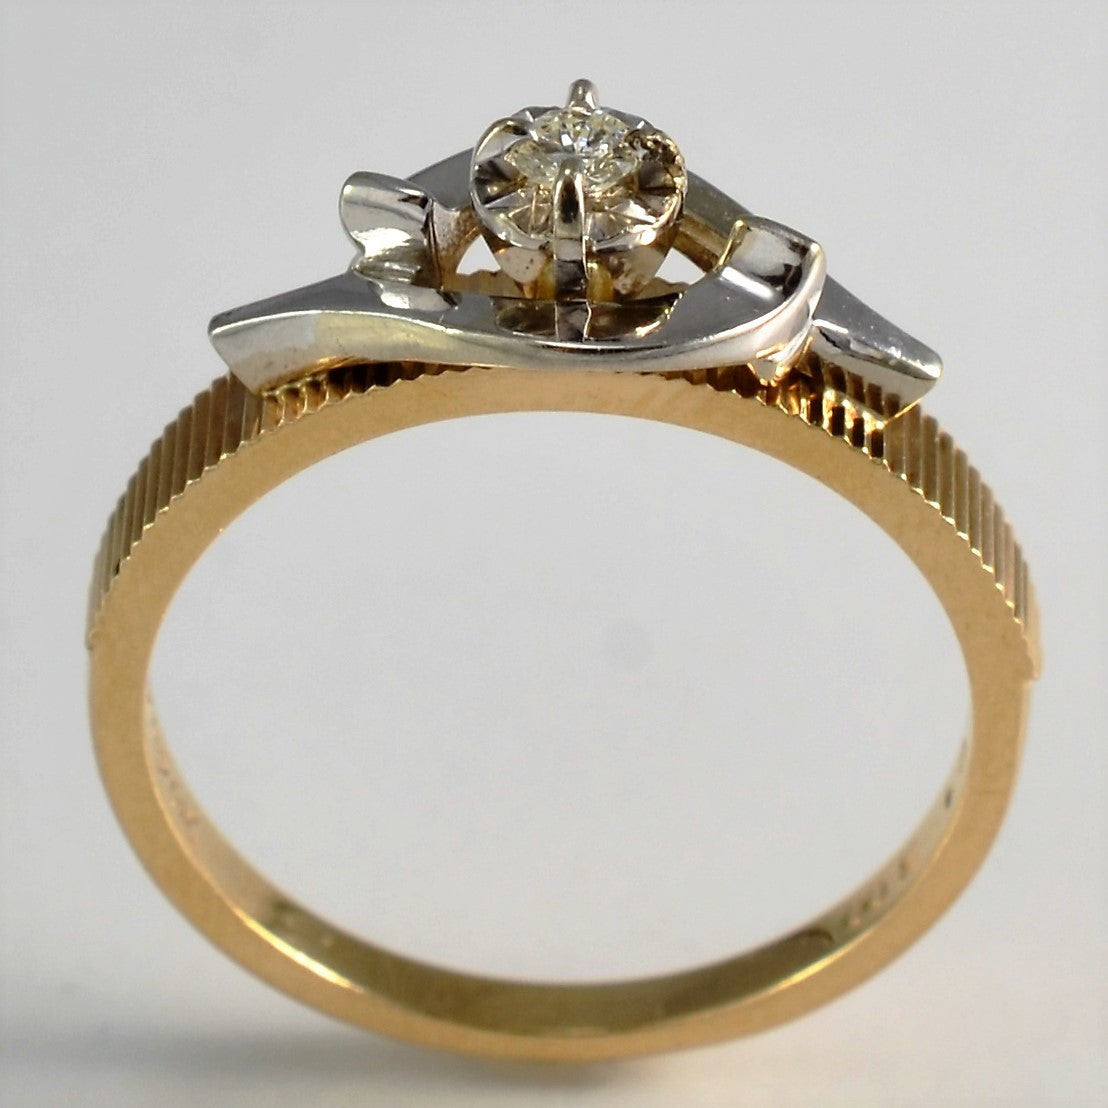 Illusion Set Textured Diamond Ring | 0.05ct | SZ 6.25 |